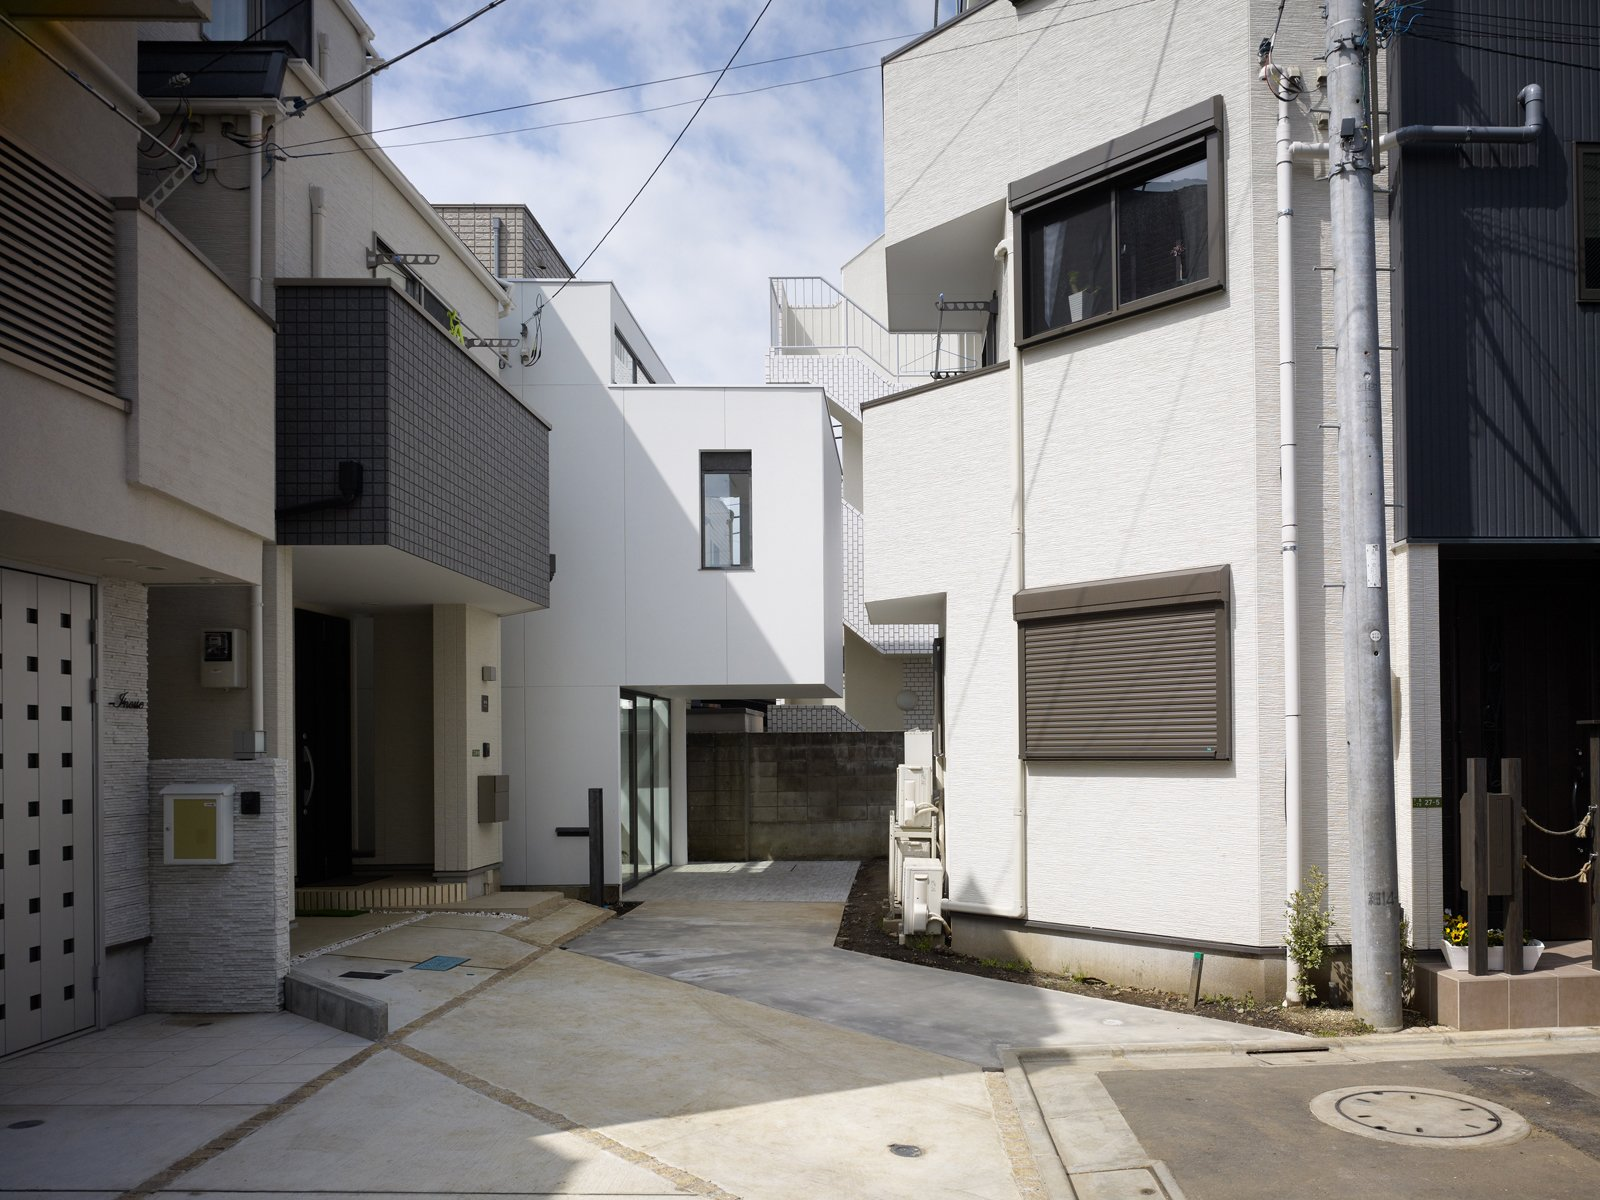 Pairing living flora amidst stark concrete and devoting most of the essential 653-square-foot interior to a garden space, architect Akira Mada's Minna no le (meaning Everyone's House) is a functioning contradiction.  Unique Tokyo-Based Architects by Kate Santos